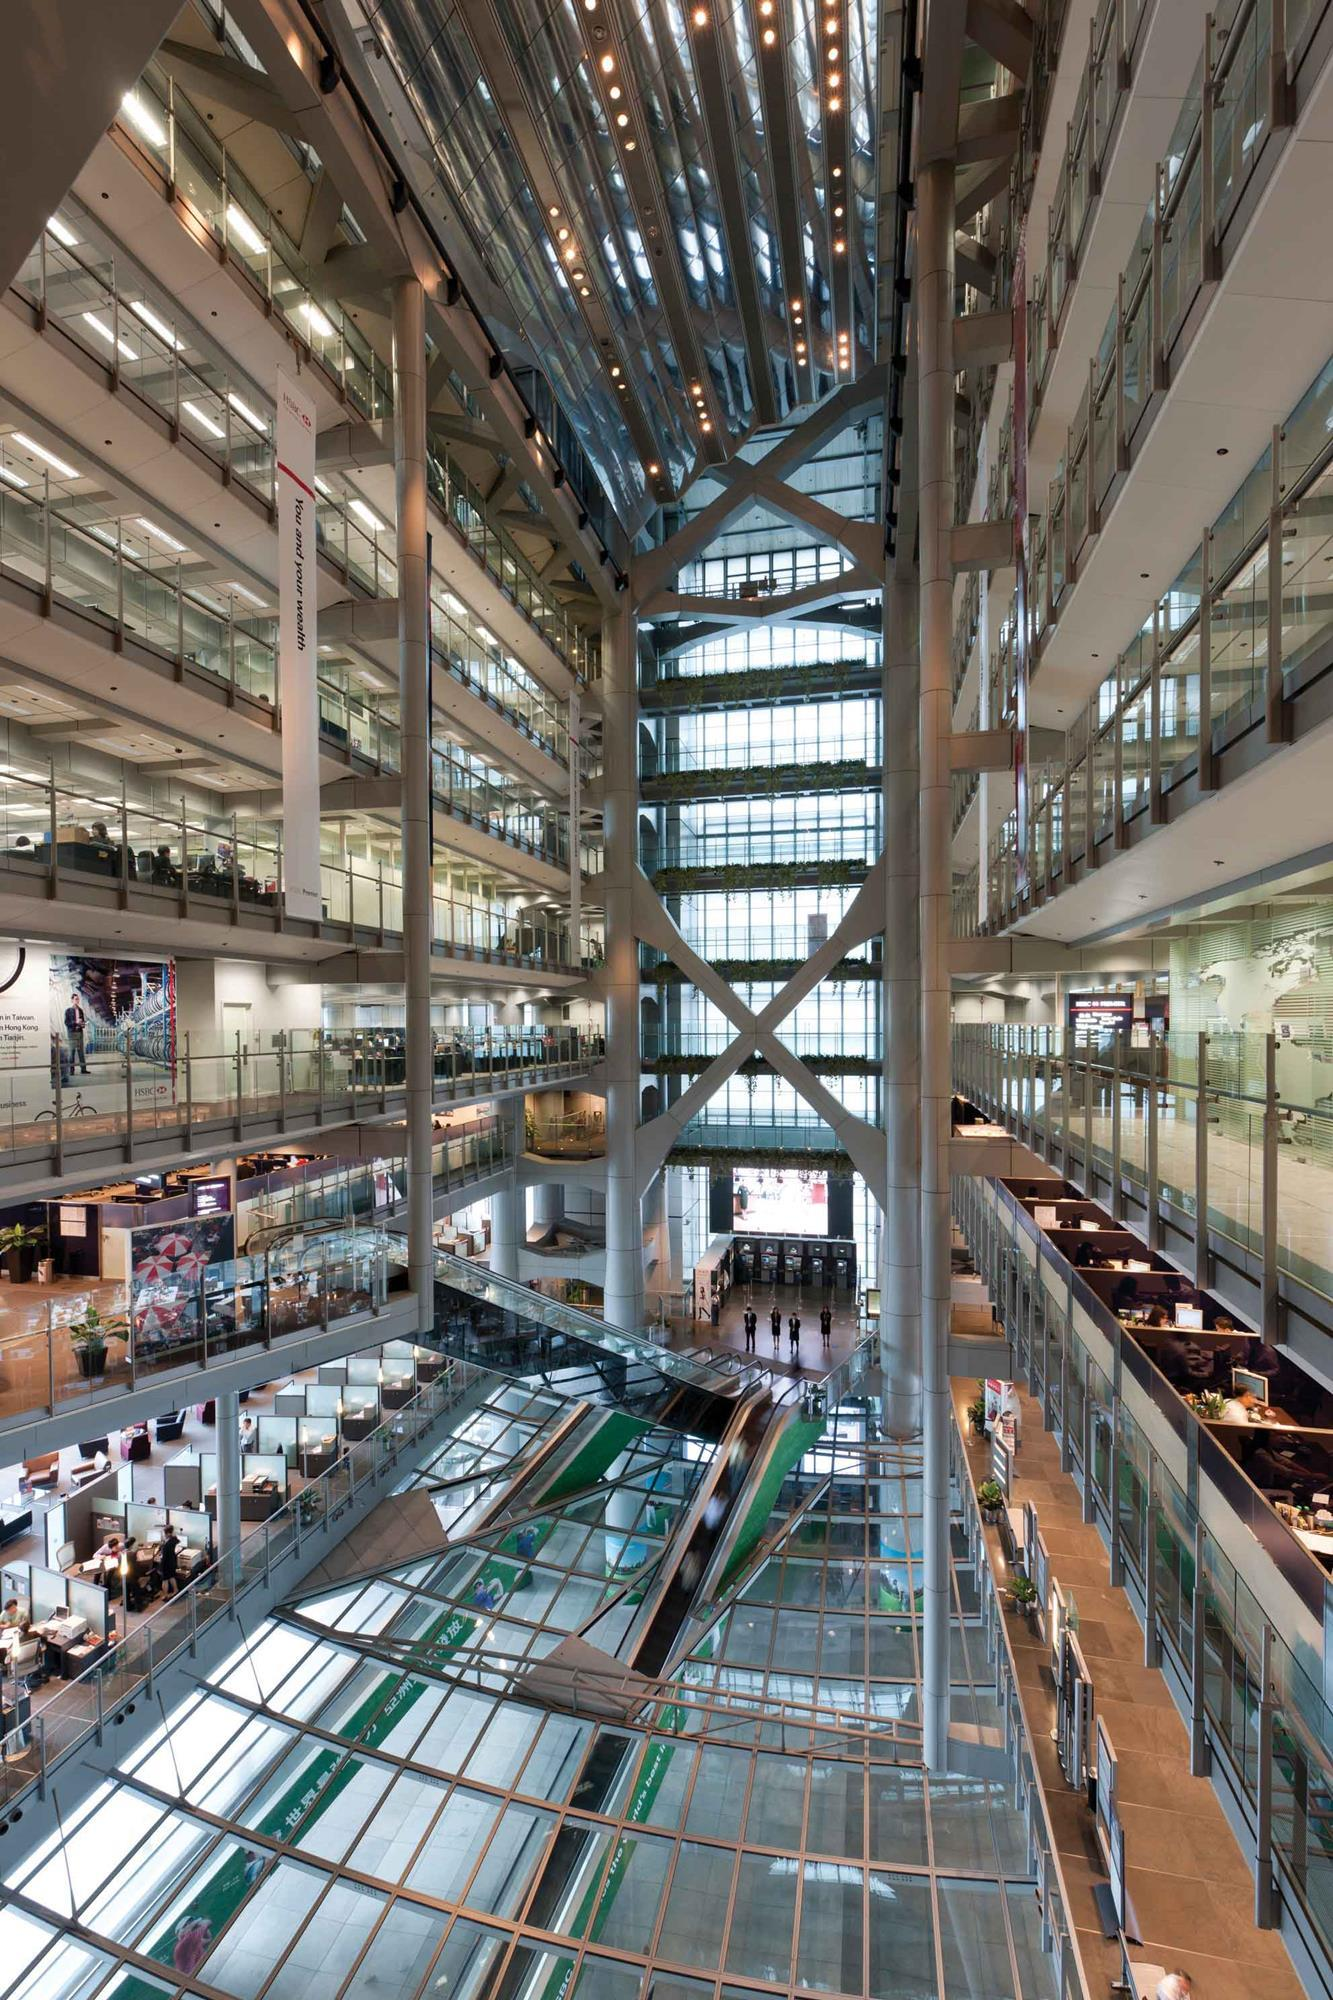 Inside the machine: the influence of high-tech architecture